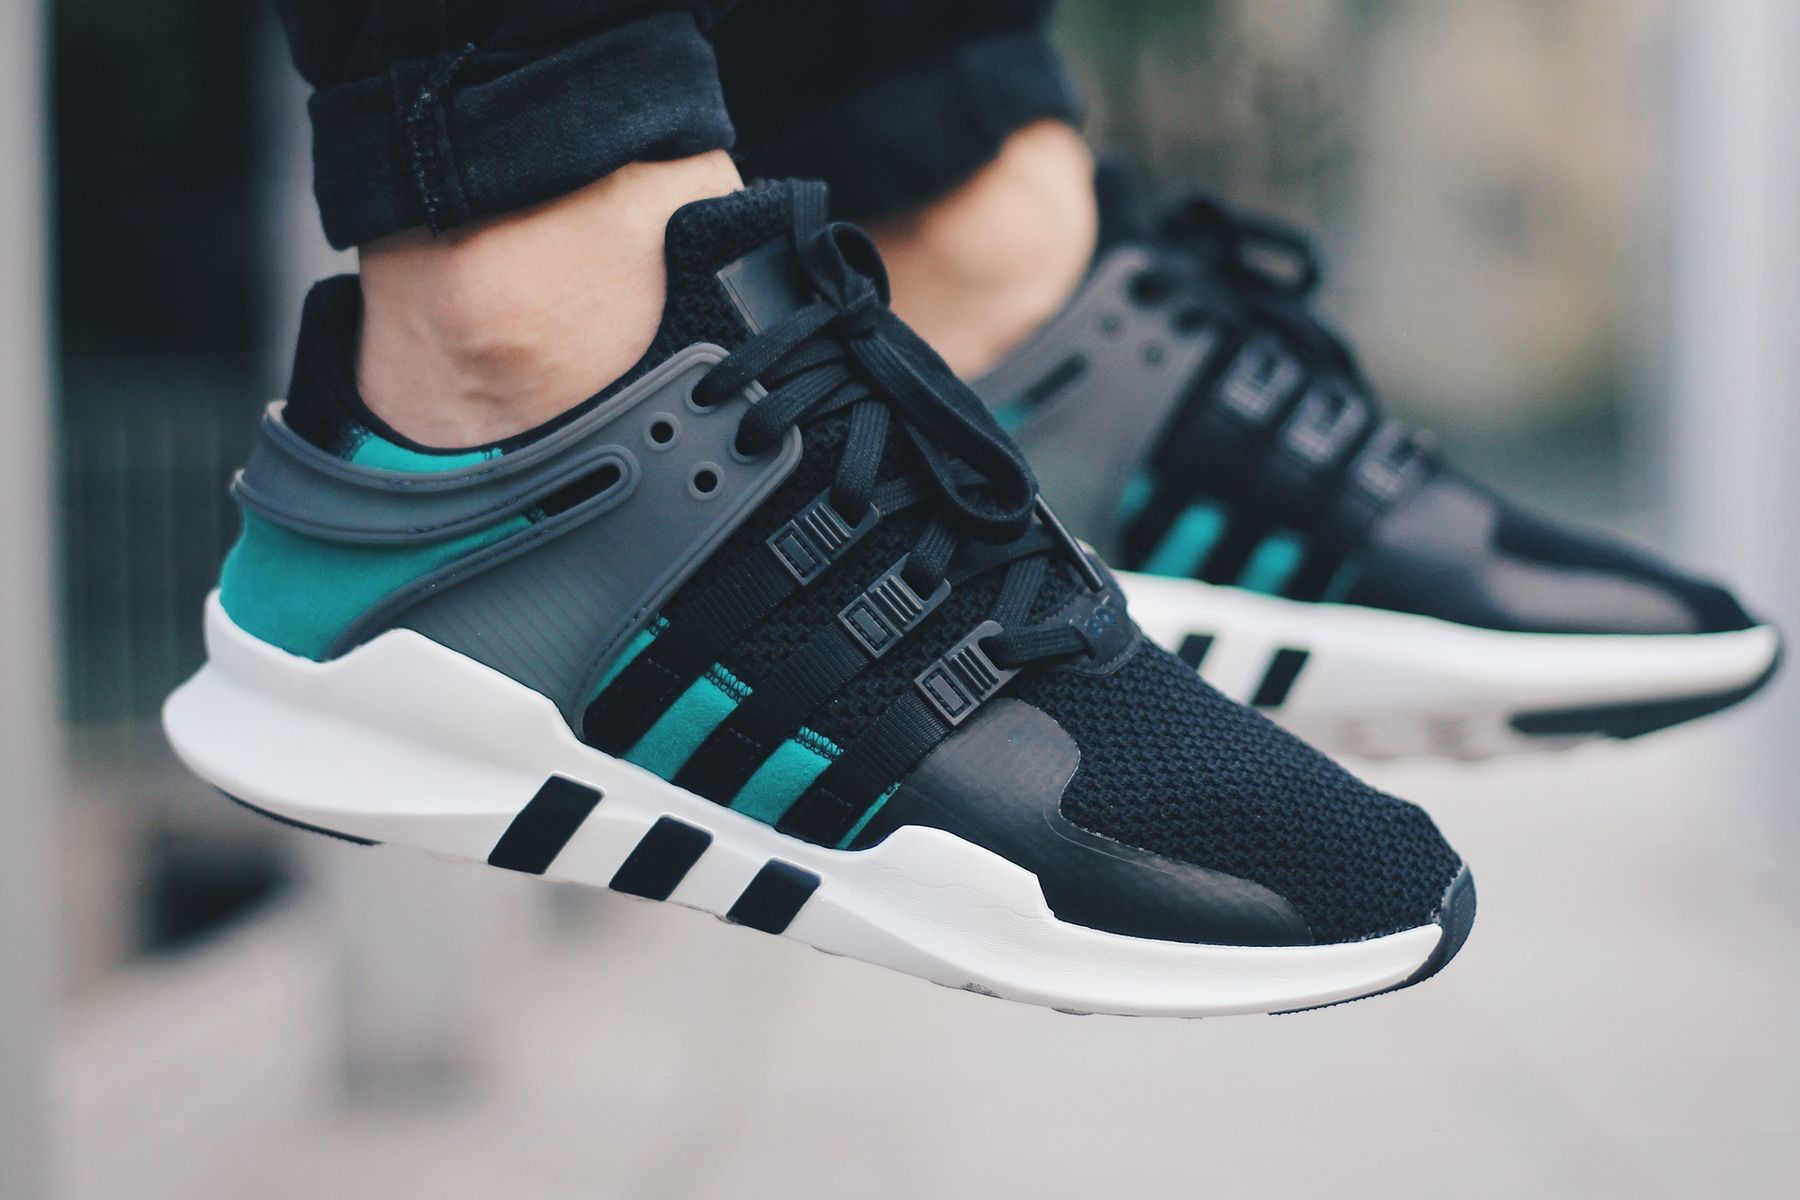 adidas EQT ADV 91-16 OG green and black